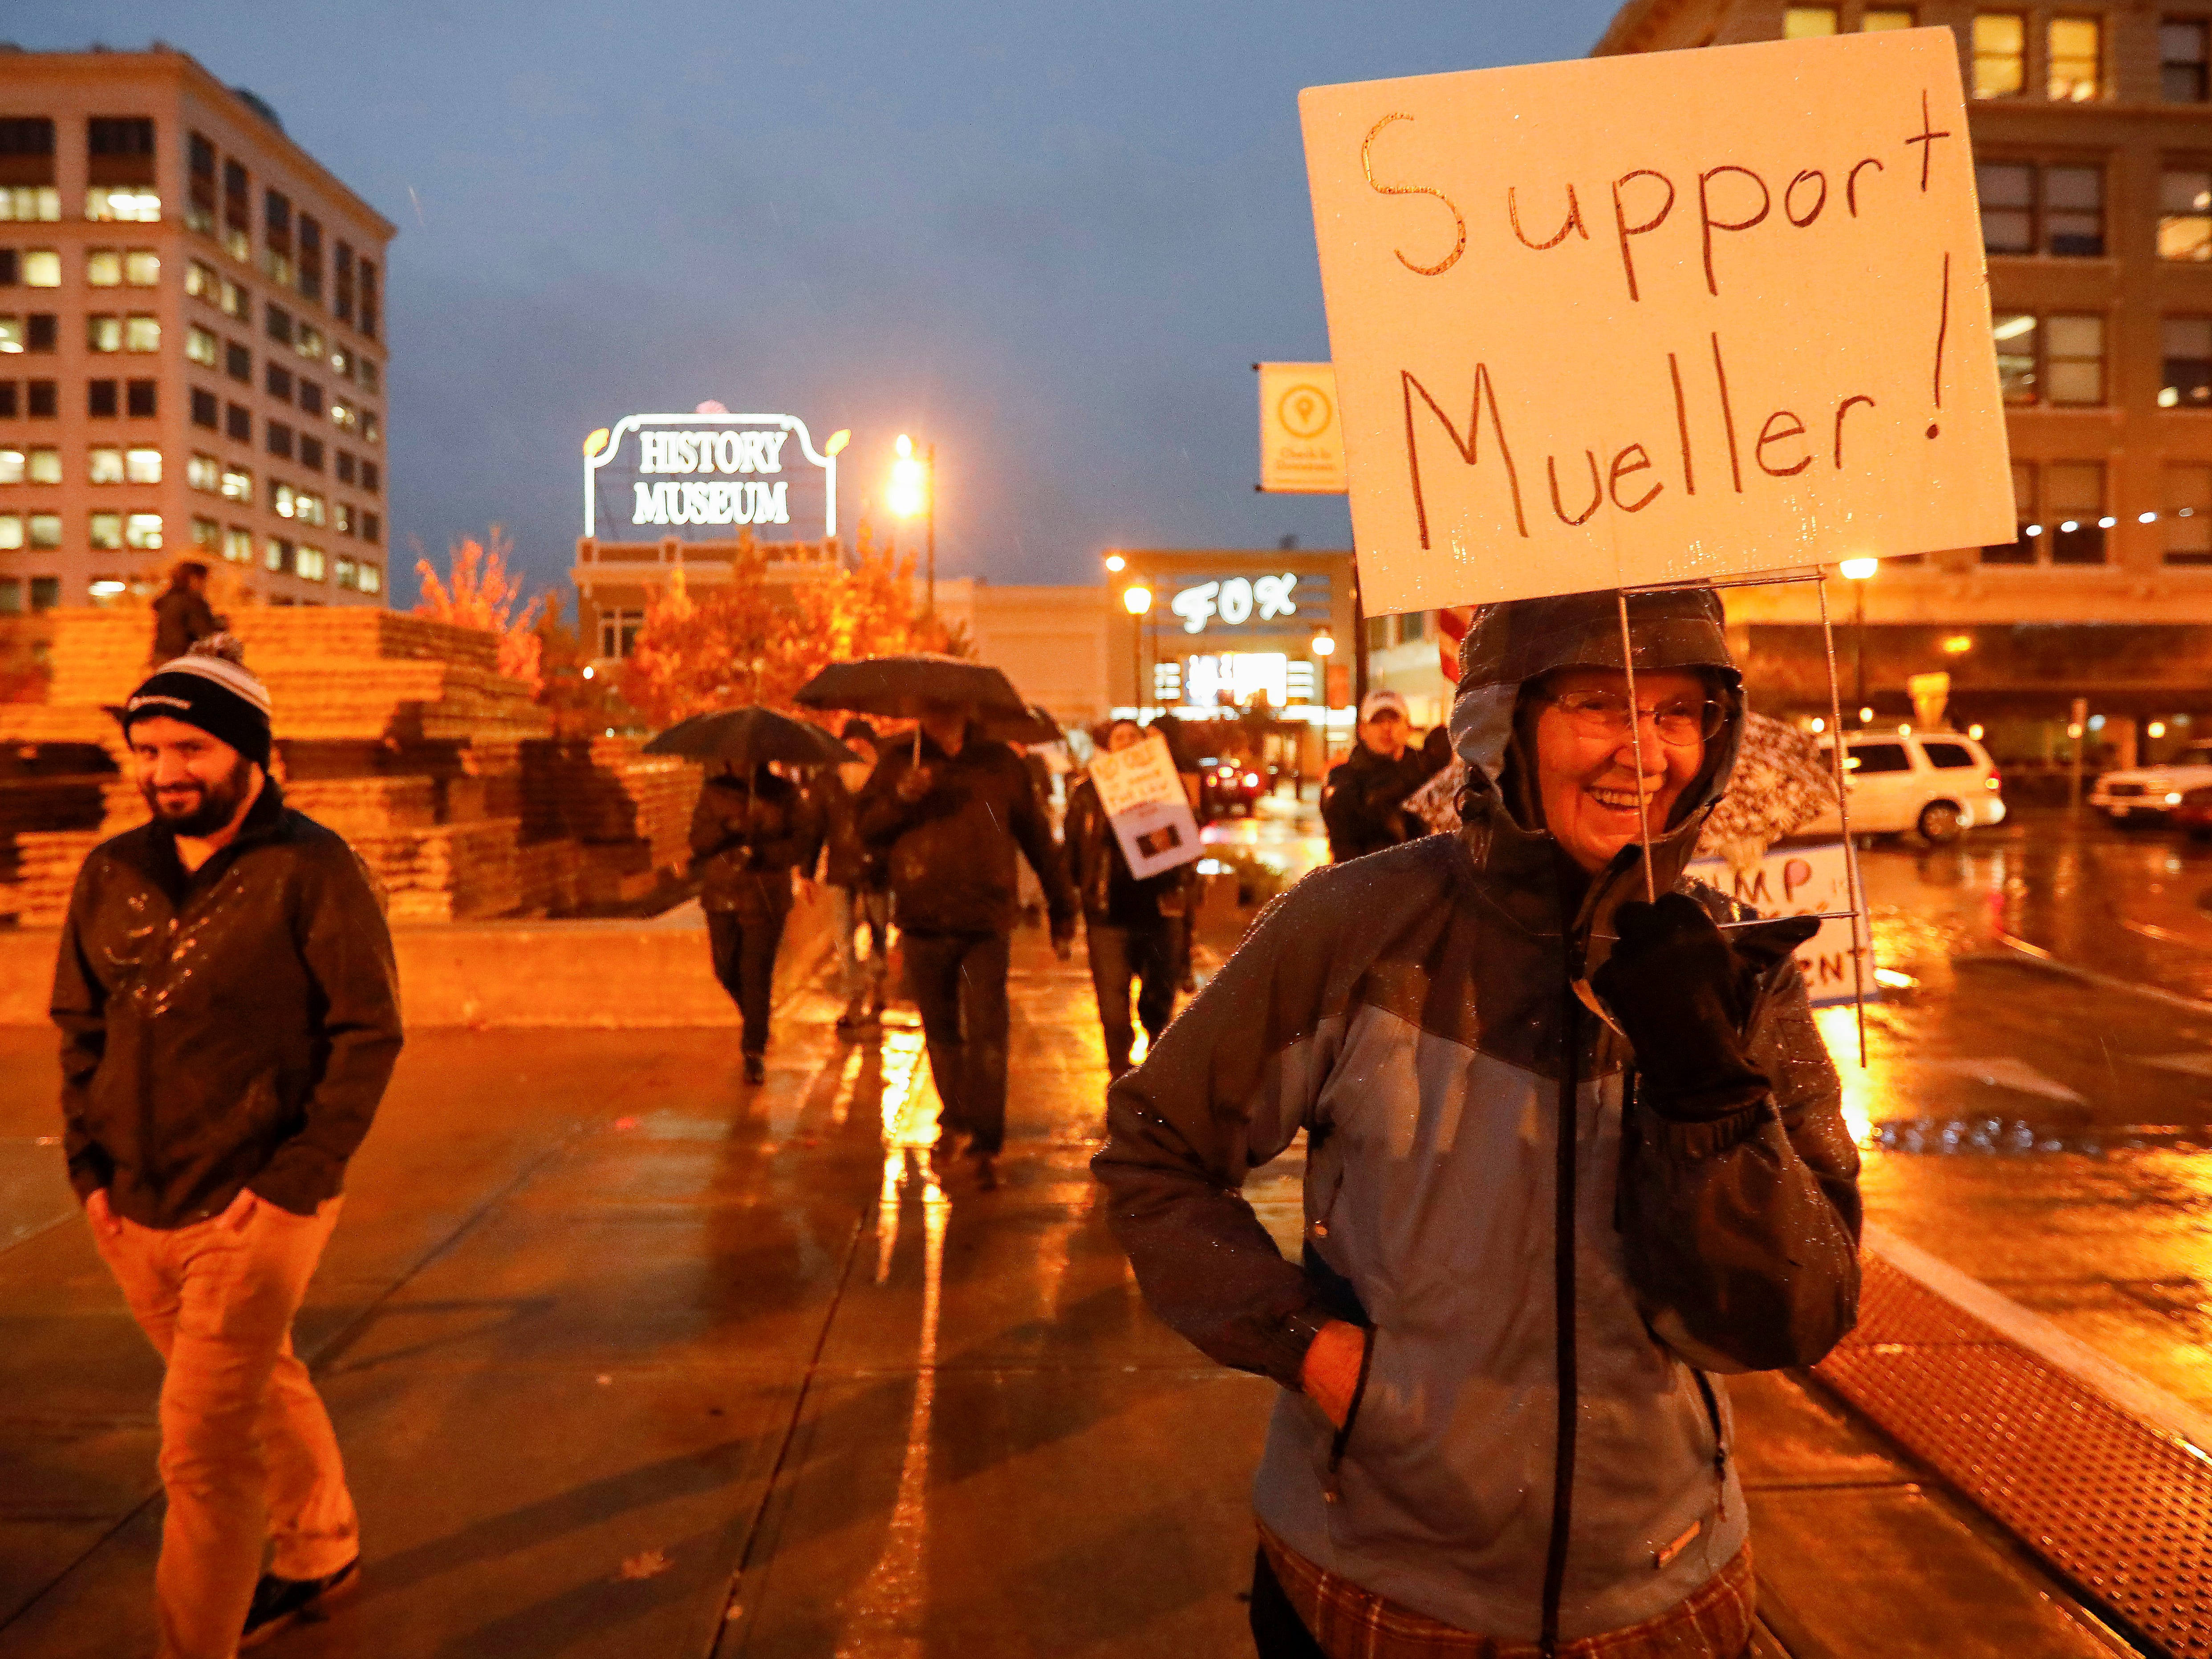 About 50 people carried umbrellas and protest signs as they marched around Park Central Square on Thursday, Nov. 8, 2018. The group was calling for new Acting Attorney General Matt Whitaker to recuse himself from Robert Mueller's investigation into Russian interference in the 2016 election.